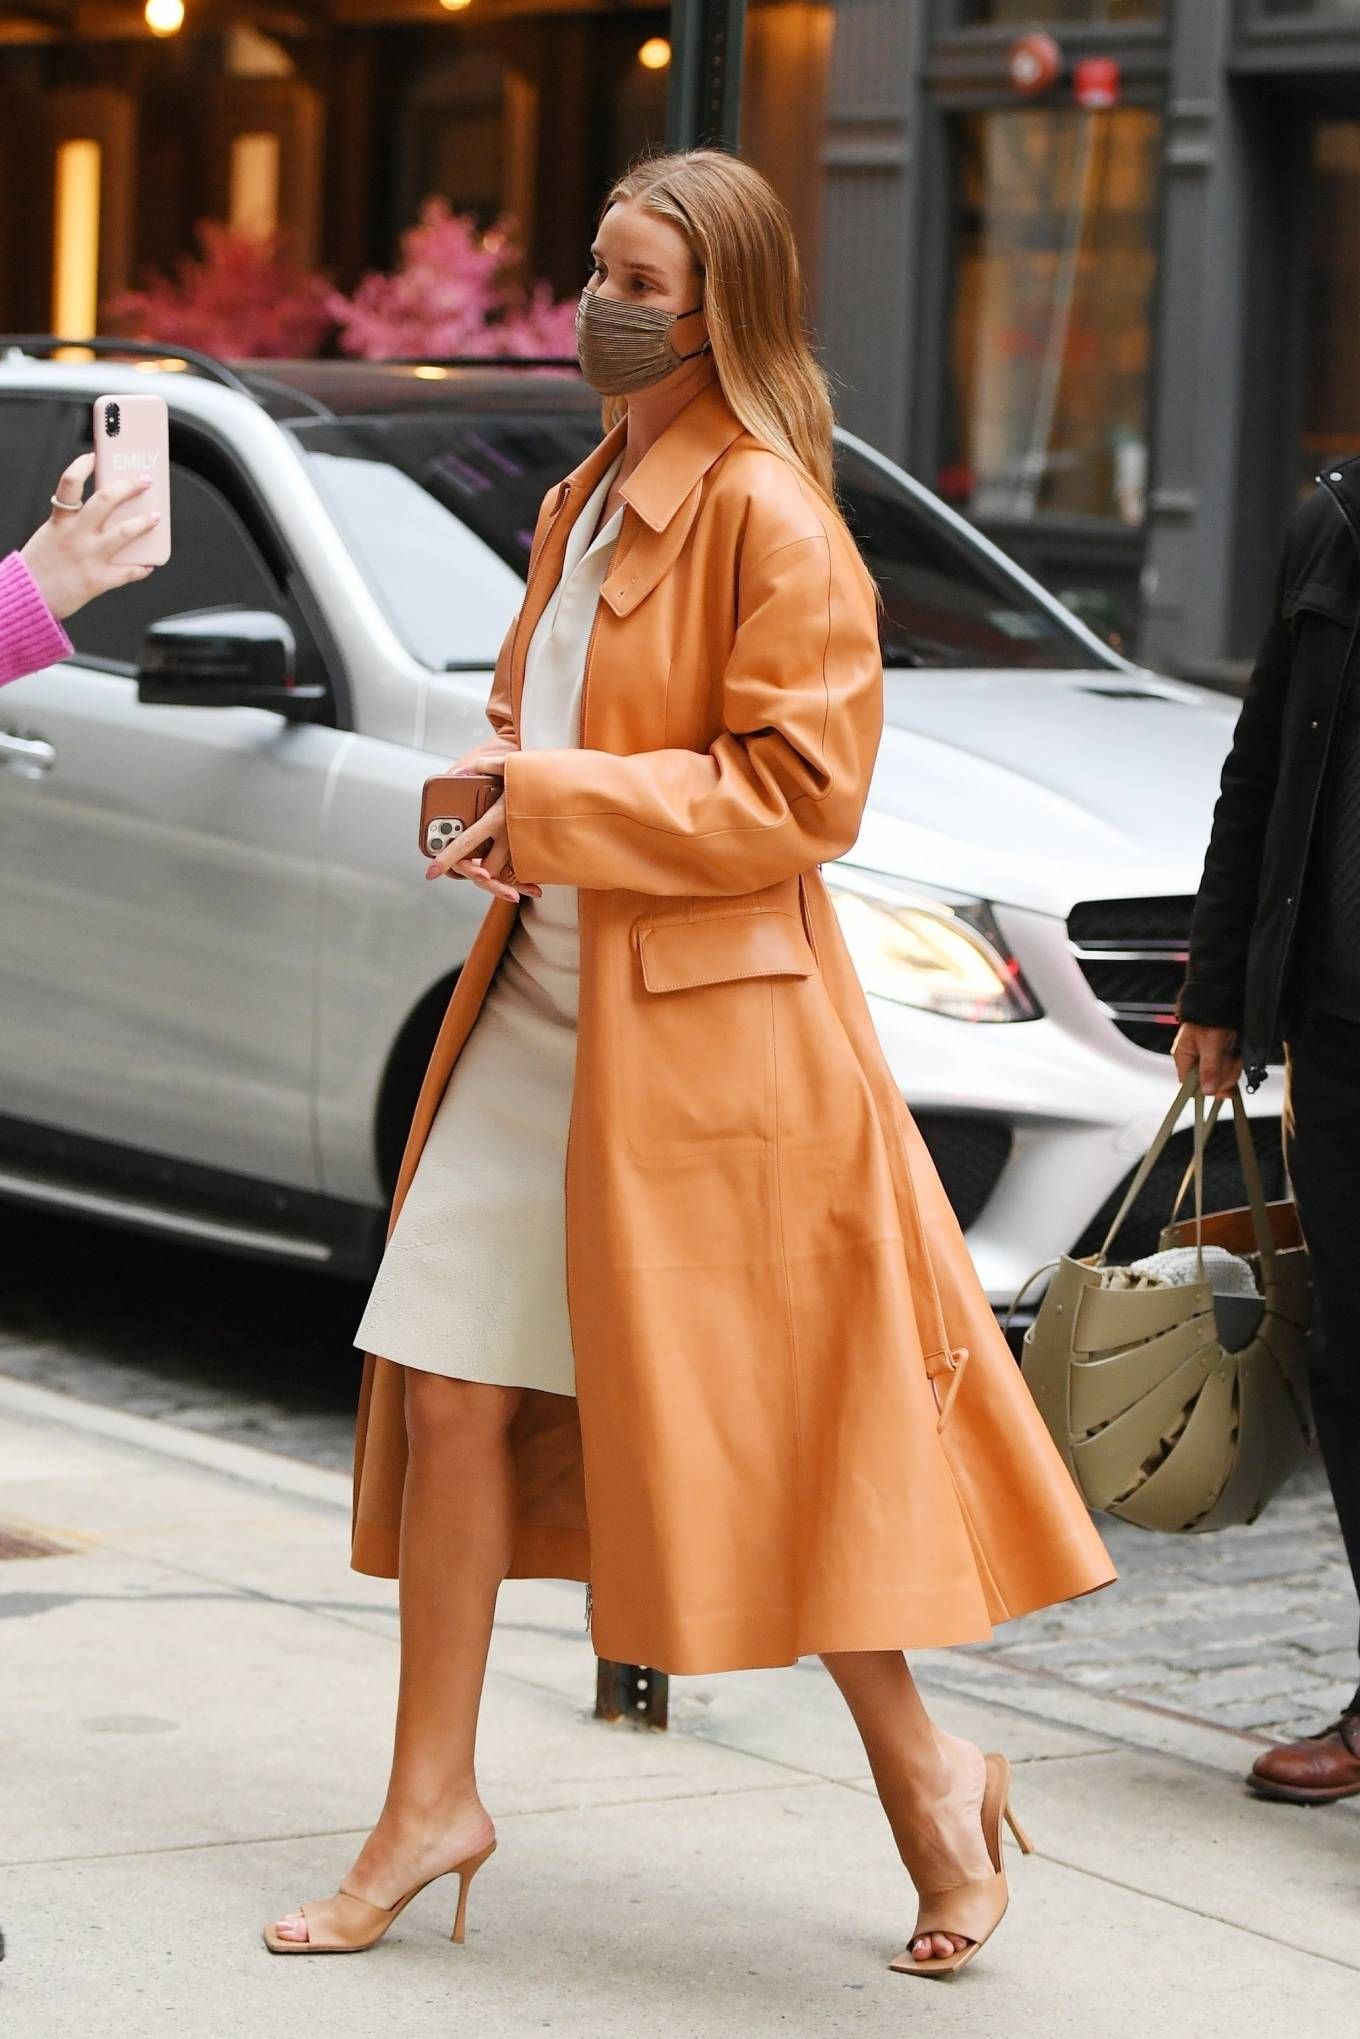 Rosie Huntington-Whiteley 2021 : Rosie Huntington-Whiteley – With a coral-hued trench coat in New York-07